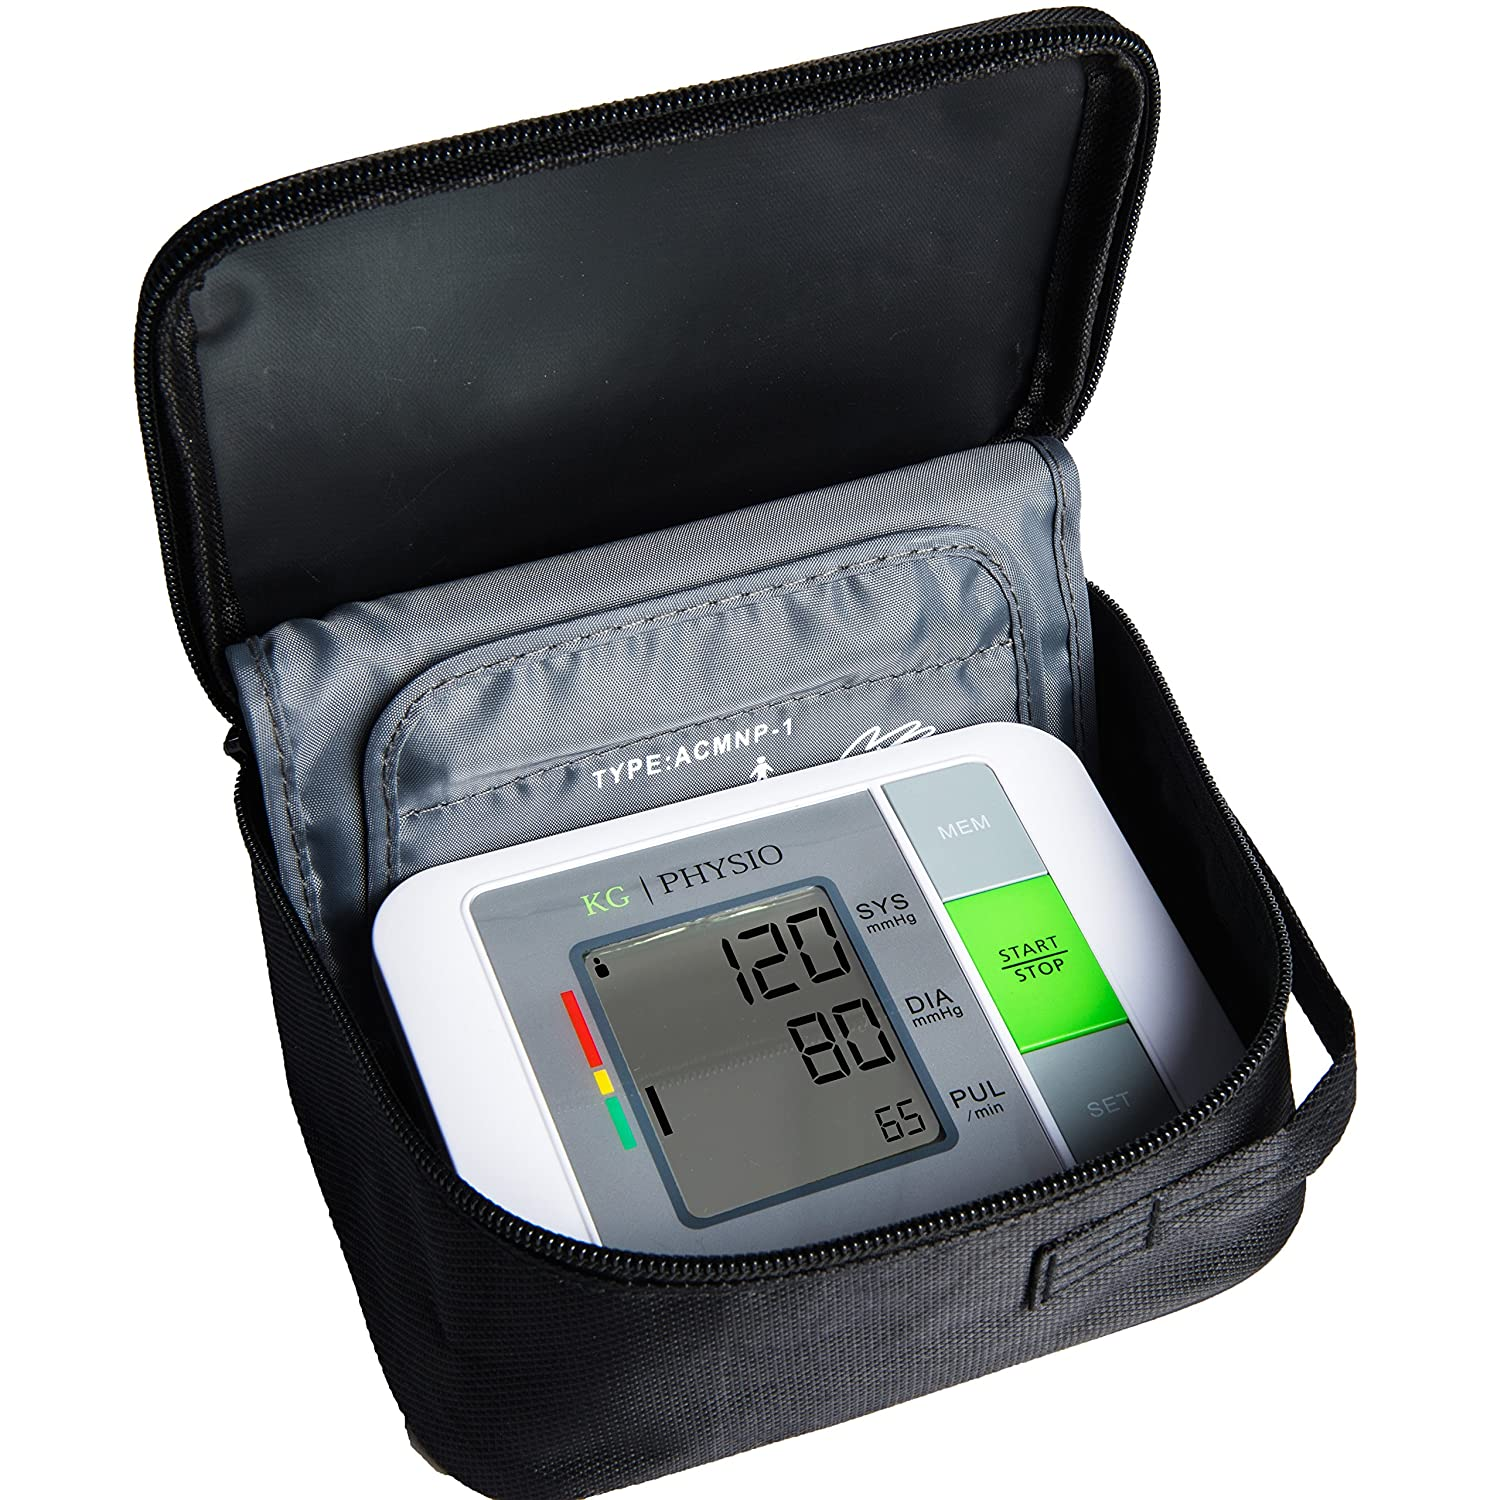 KG | PHYSIO Blood Pressure Monitor